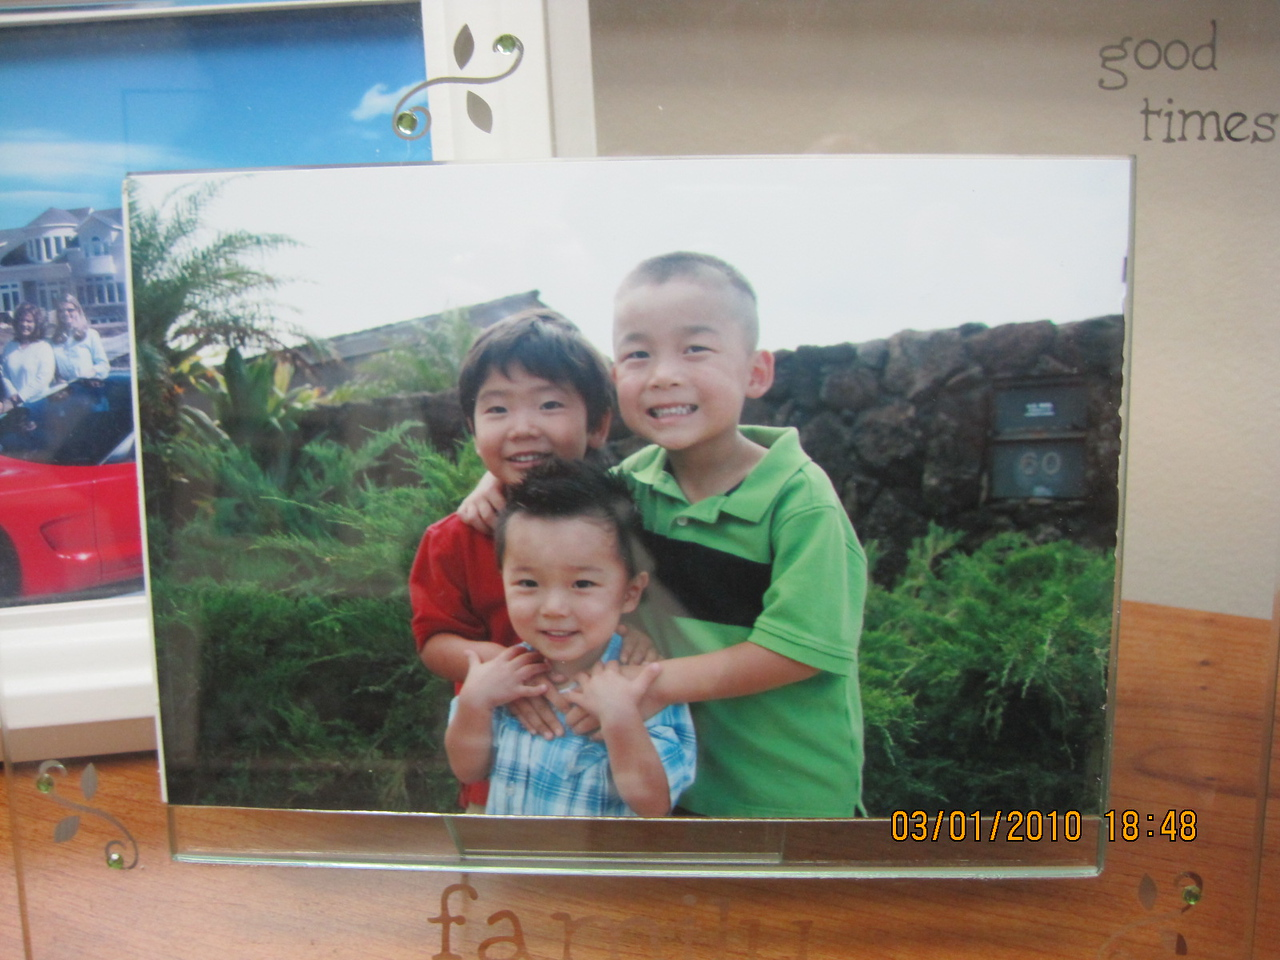 meet my financial advisor Katie's 3 adopted sons: #1 Kylan (Tsun Tien=Spring Field) in green is 6 from China; Kaden will be 4;  and Tristan will be 3 in August both from Korea.  They are so cute!